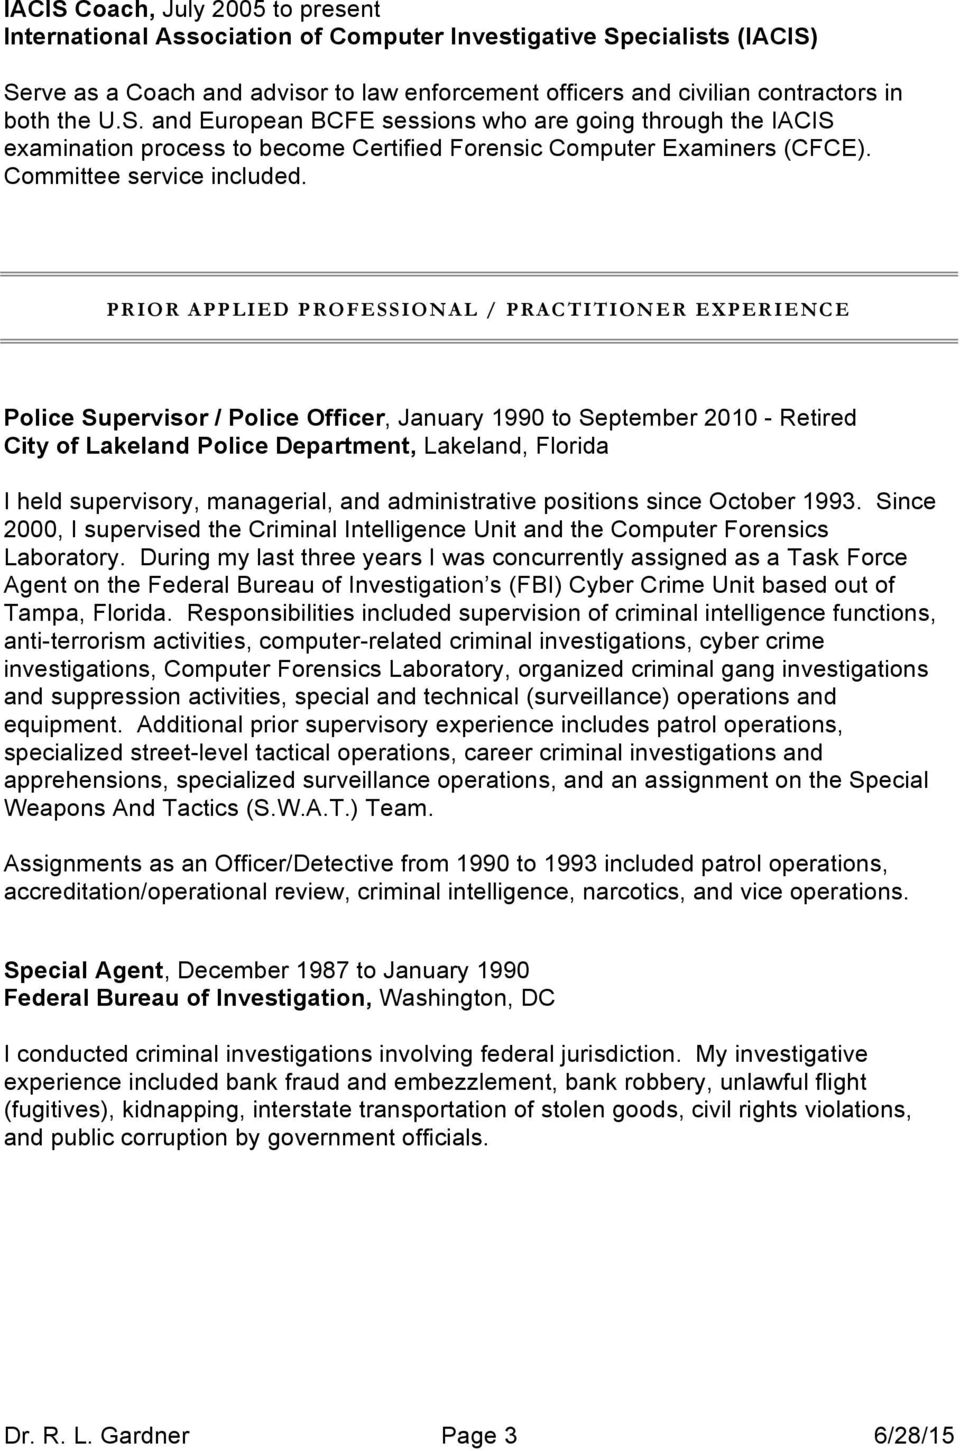 PRIOR APPLIED PROFESSIONAL / PRACTITIONER EXPERIENCE Police Supervisor / Police Officer, January 1990 to September 2010 - Retired City of Lakeland Police Department, Lakeland, Florida I held